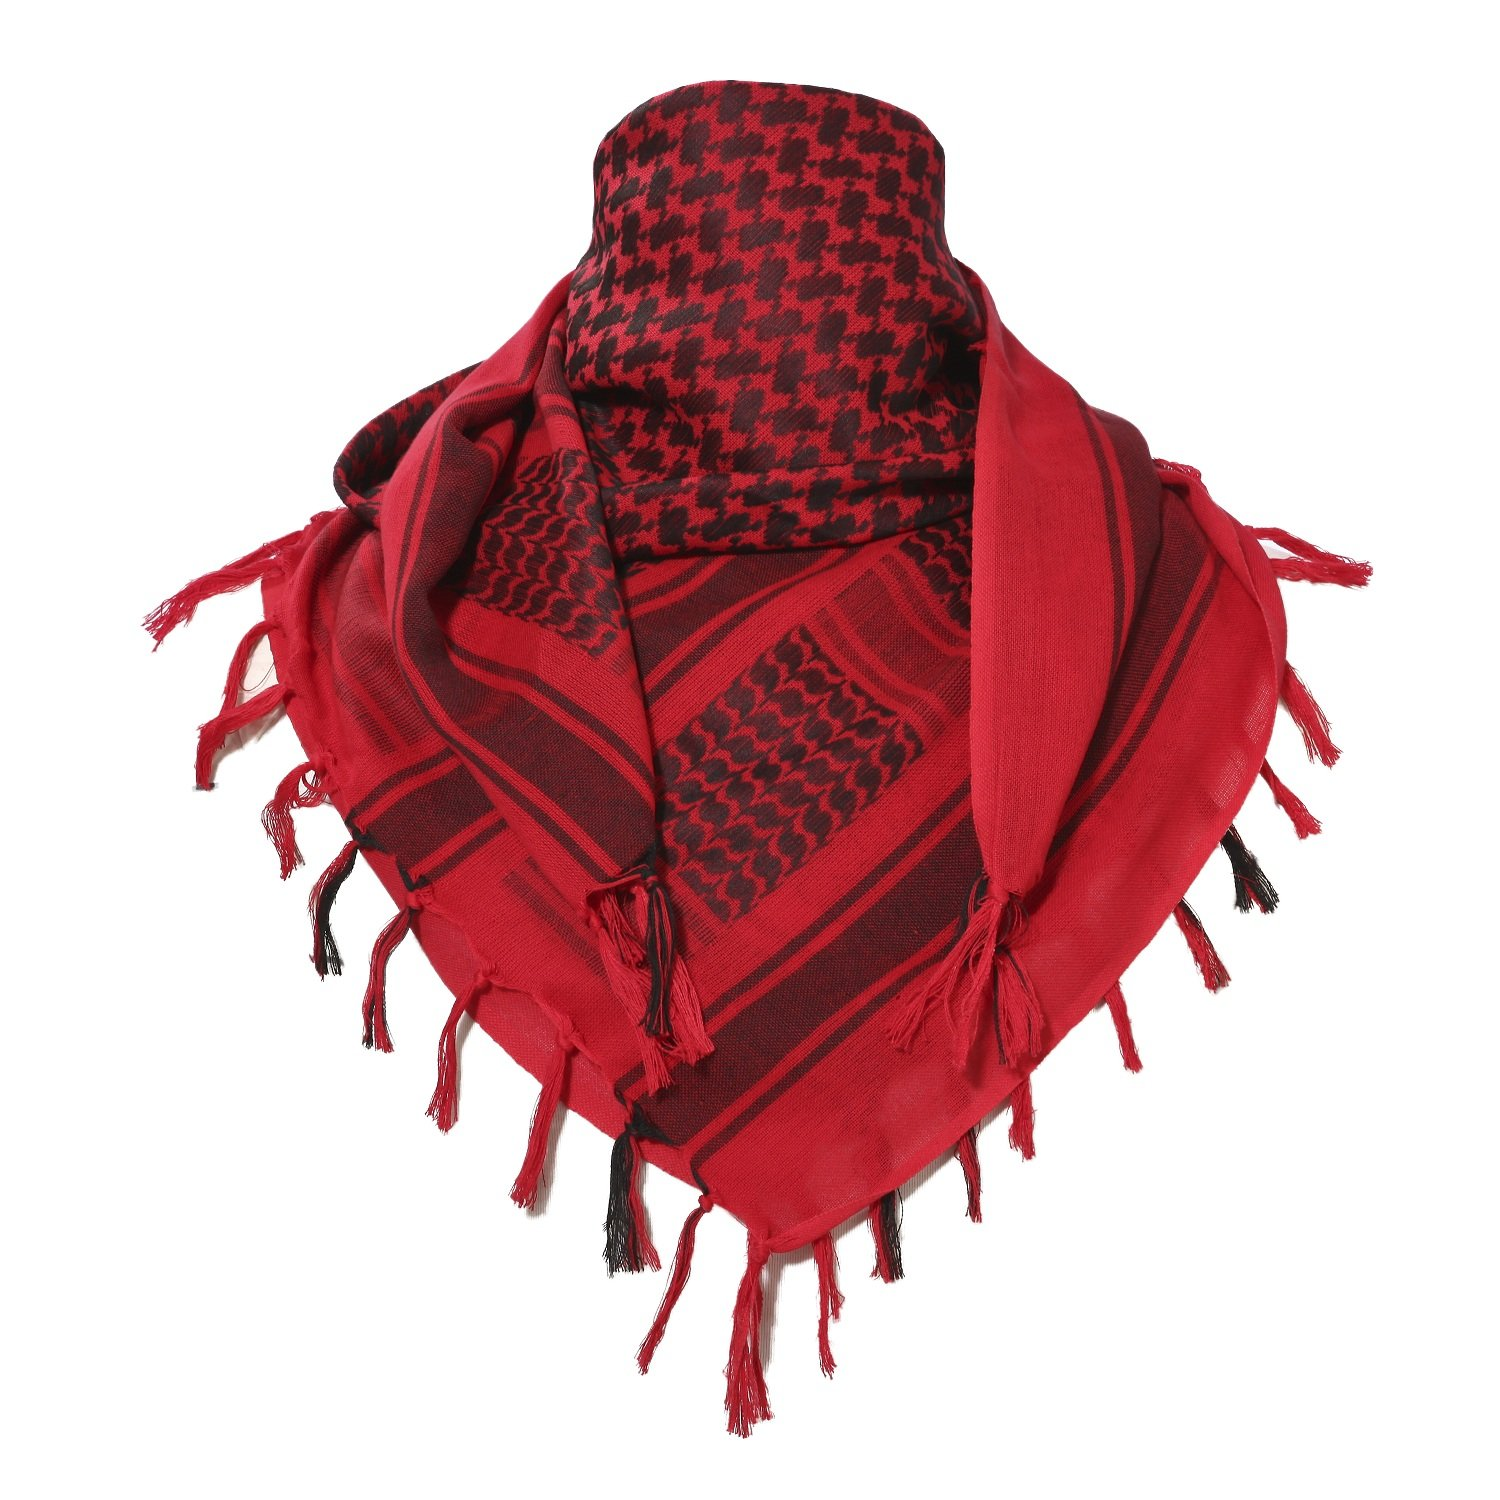 MAGNIVIT 100% Cotton Keffiyeh Tactical Desert Scarf Wrap Shemagh Head Neck Arab Scarf